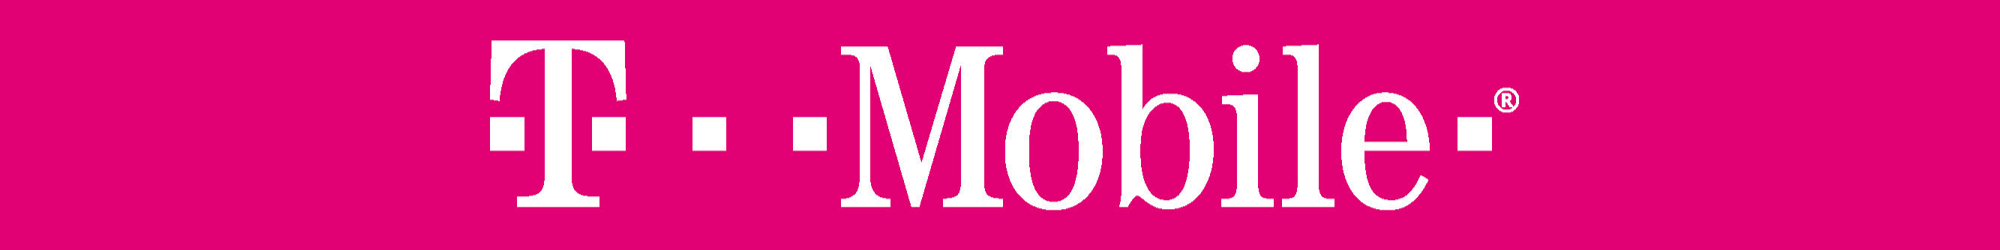 TMobile Rotating Banner 1600x200.png